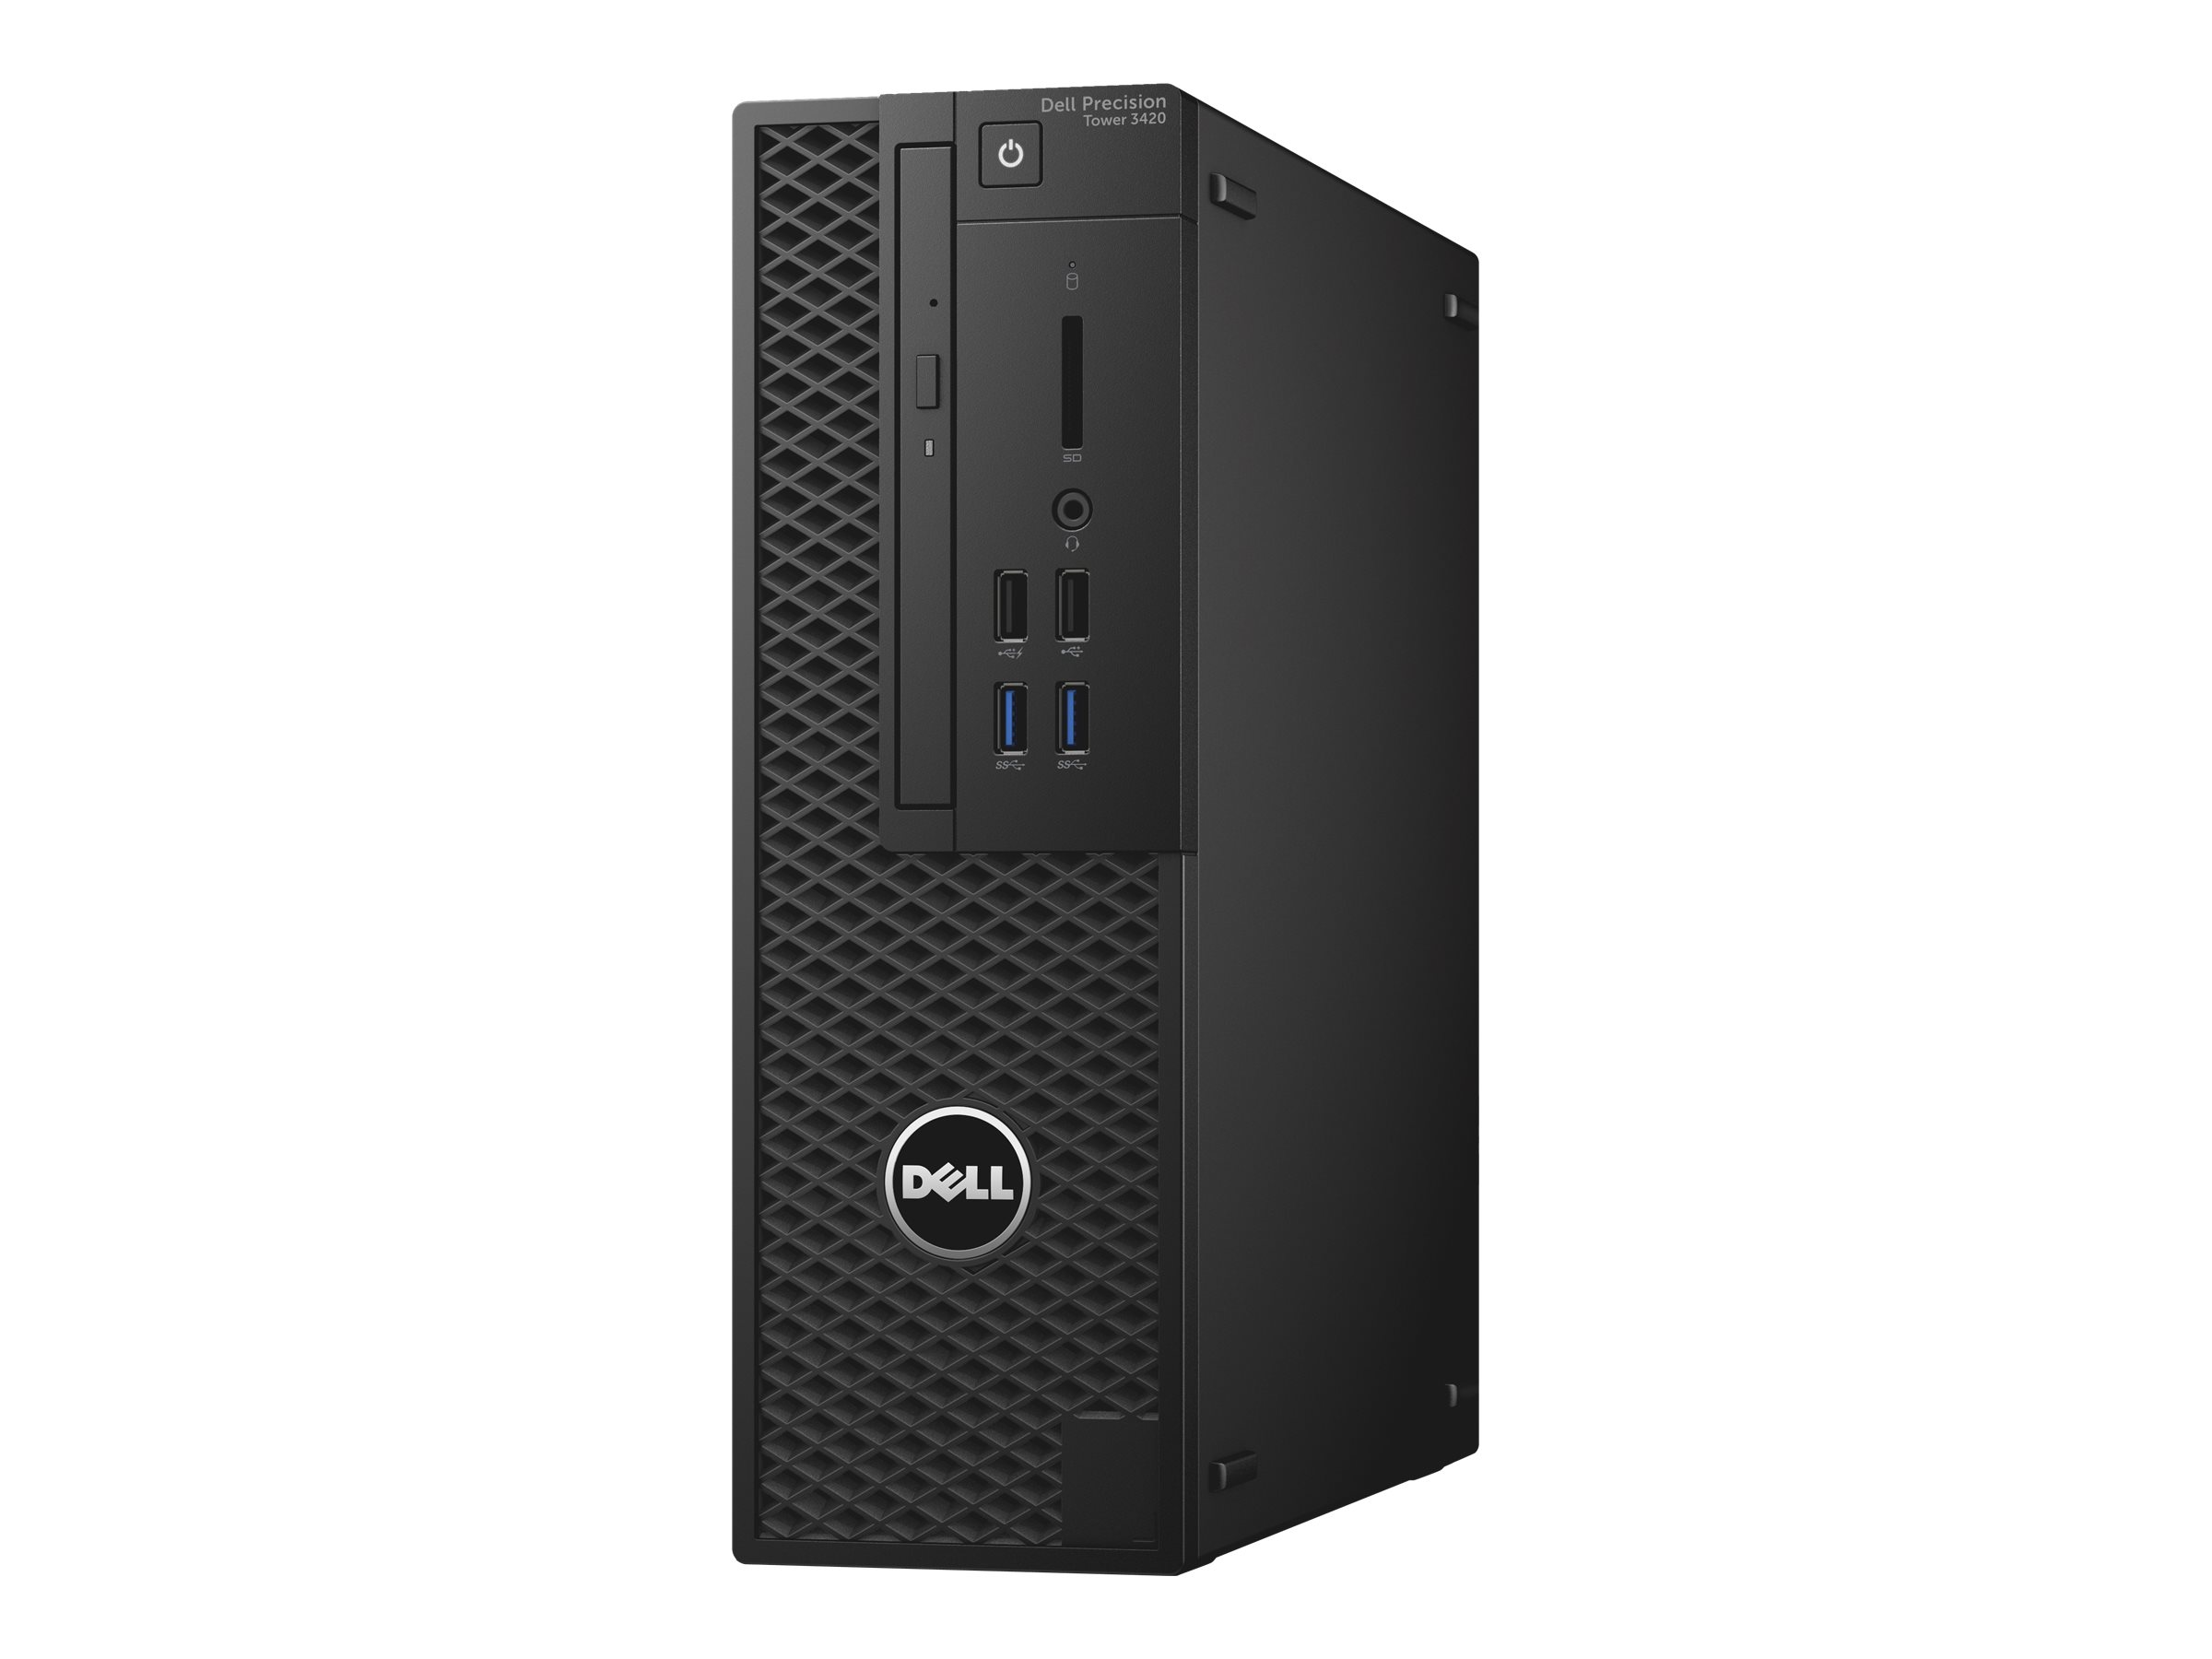 Dell Precision Tower 3420 - SFF - 1 x Xeon E3-1225V6 / 3.3 GHz